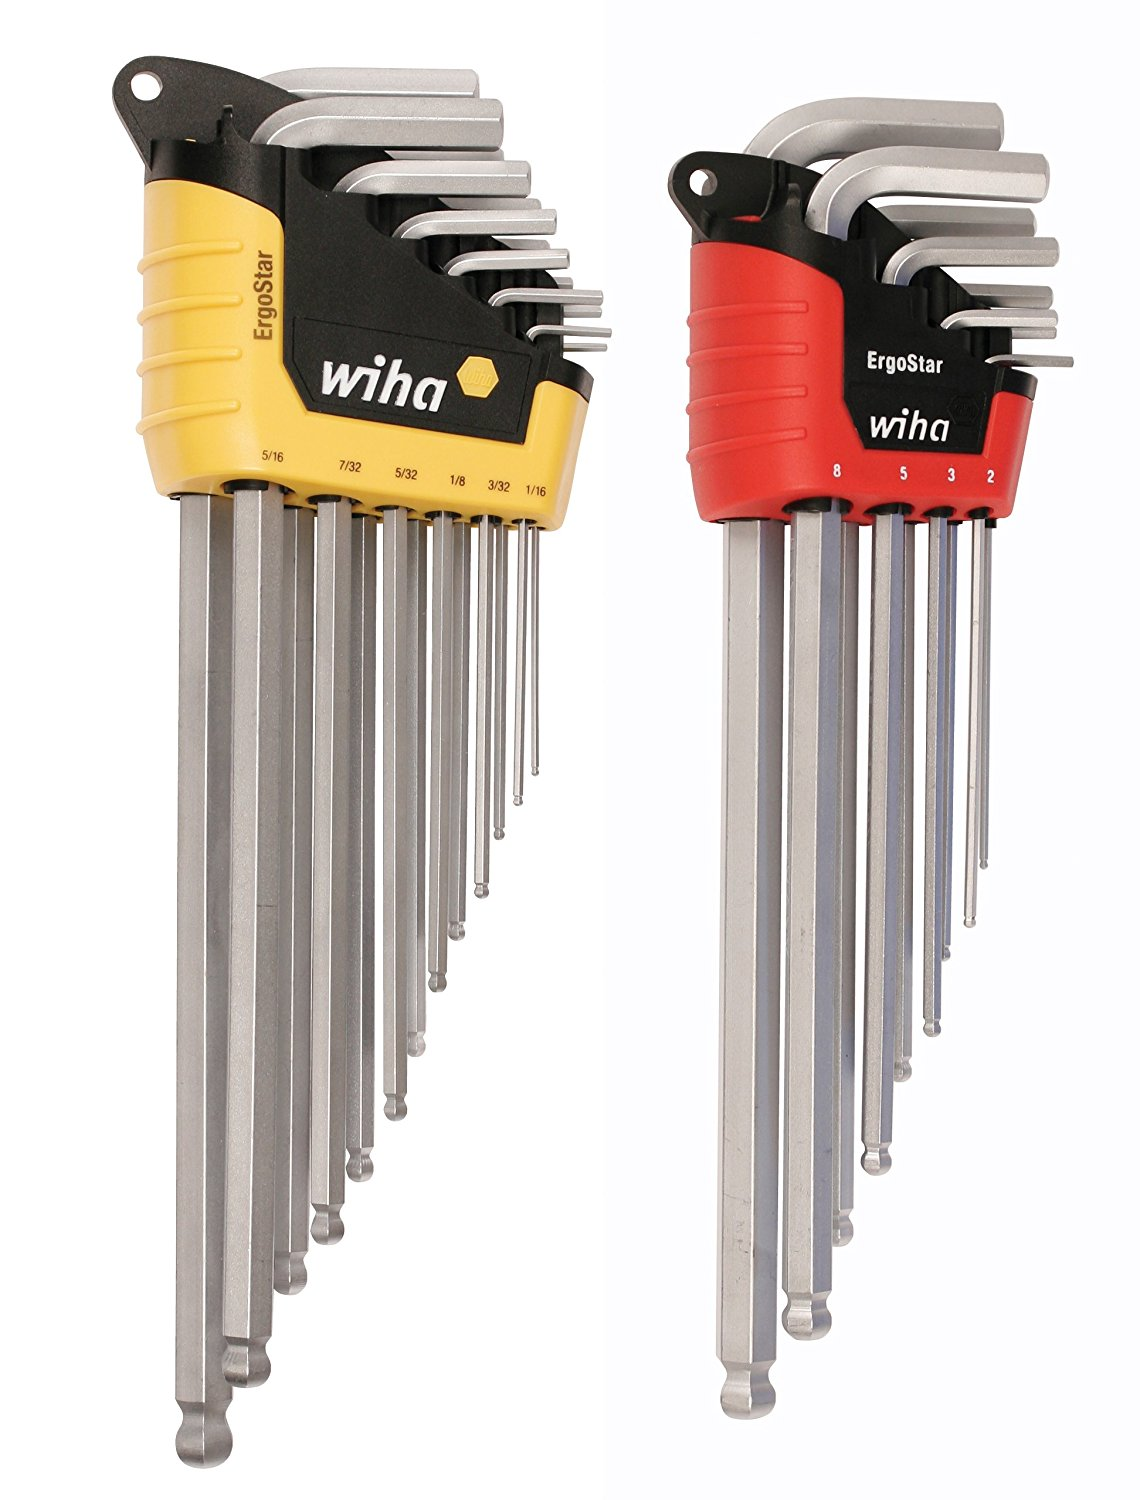 WIHA 66982 ErgoStar Ball End Hex L-Key, Inch and Metric, 22-Piece